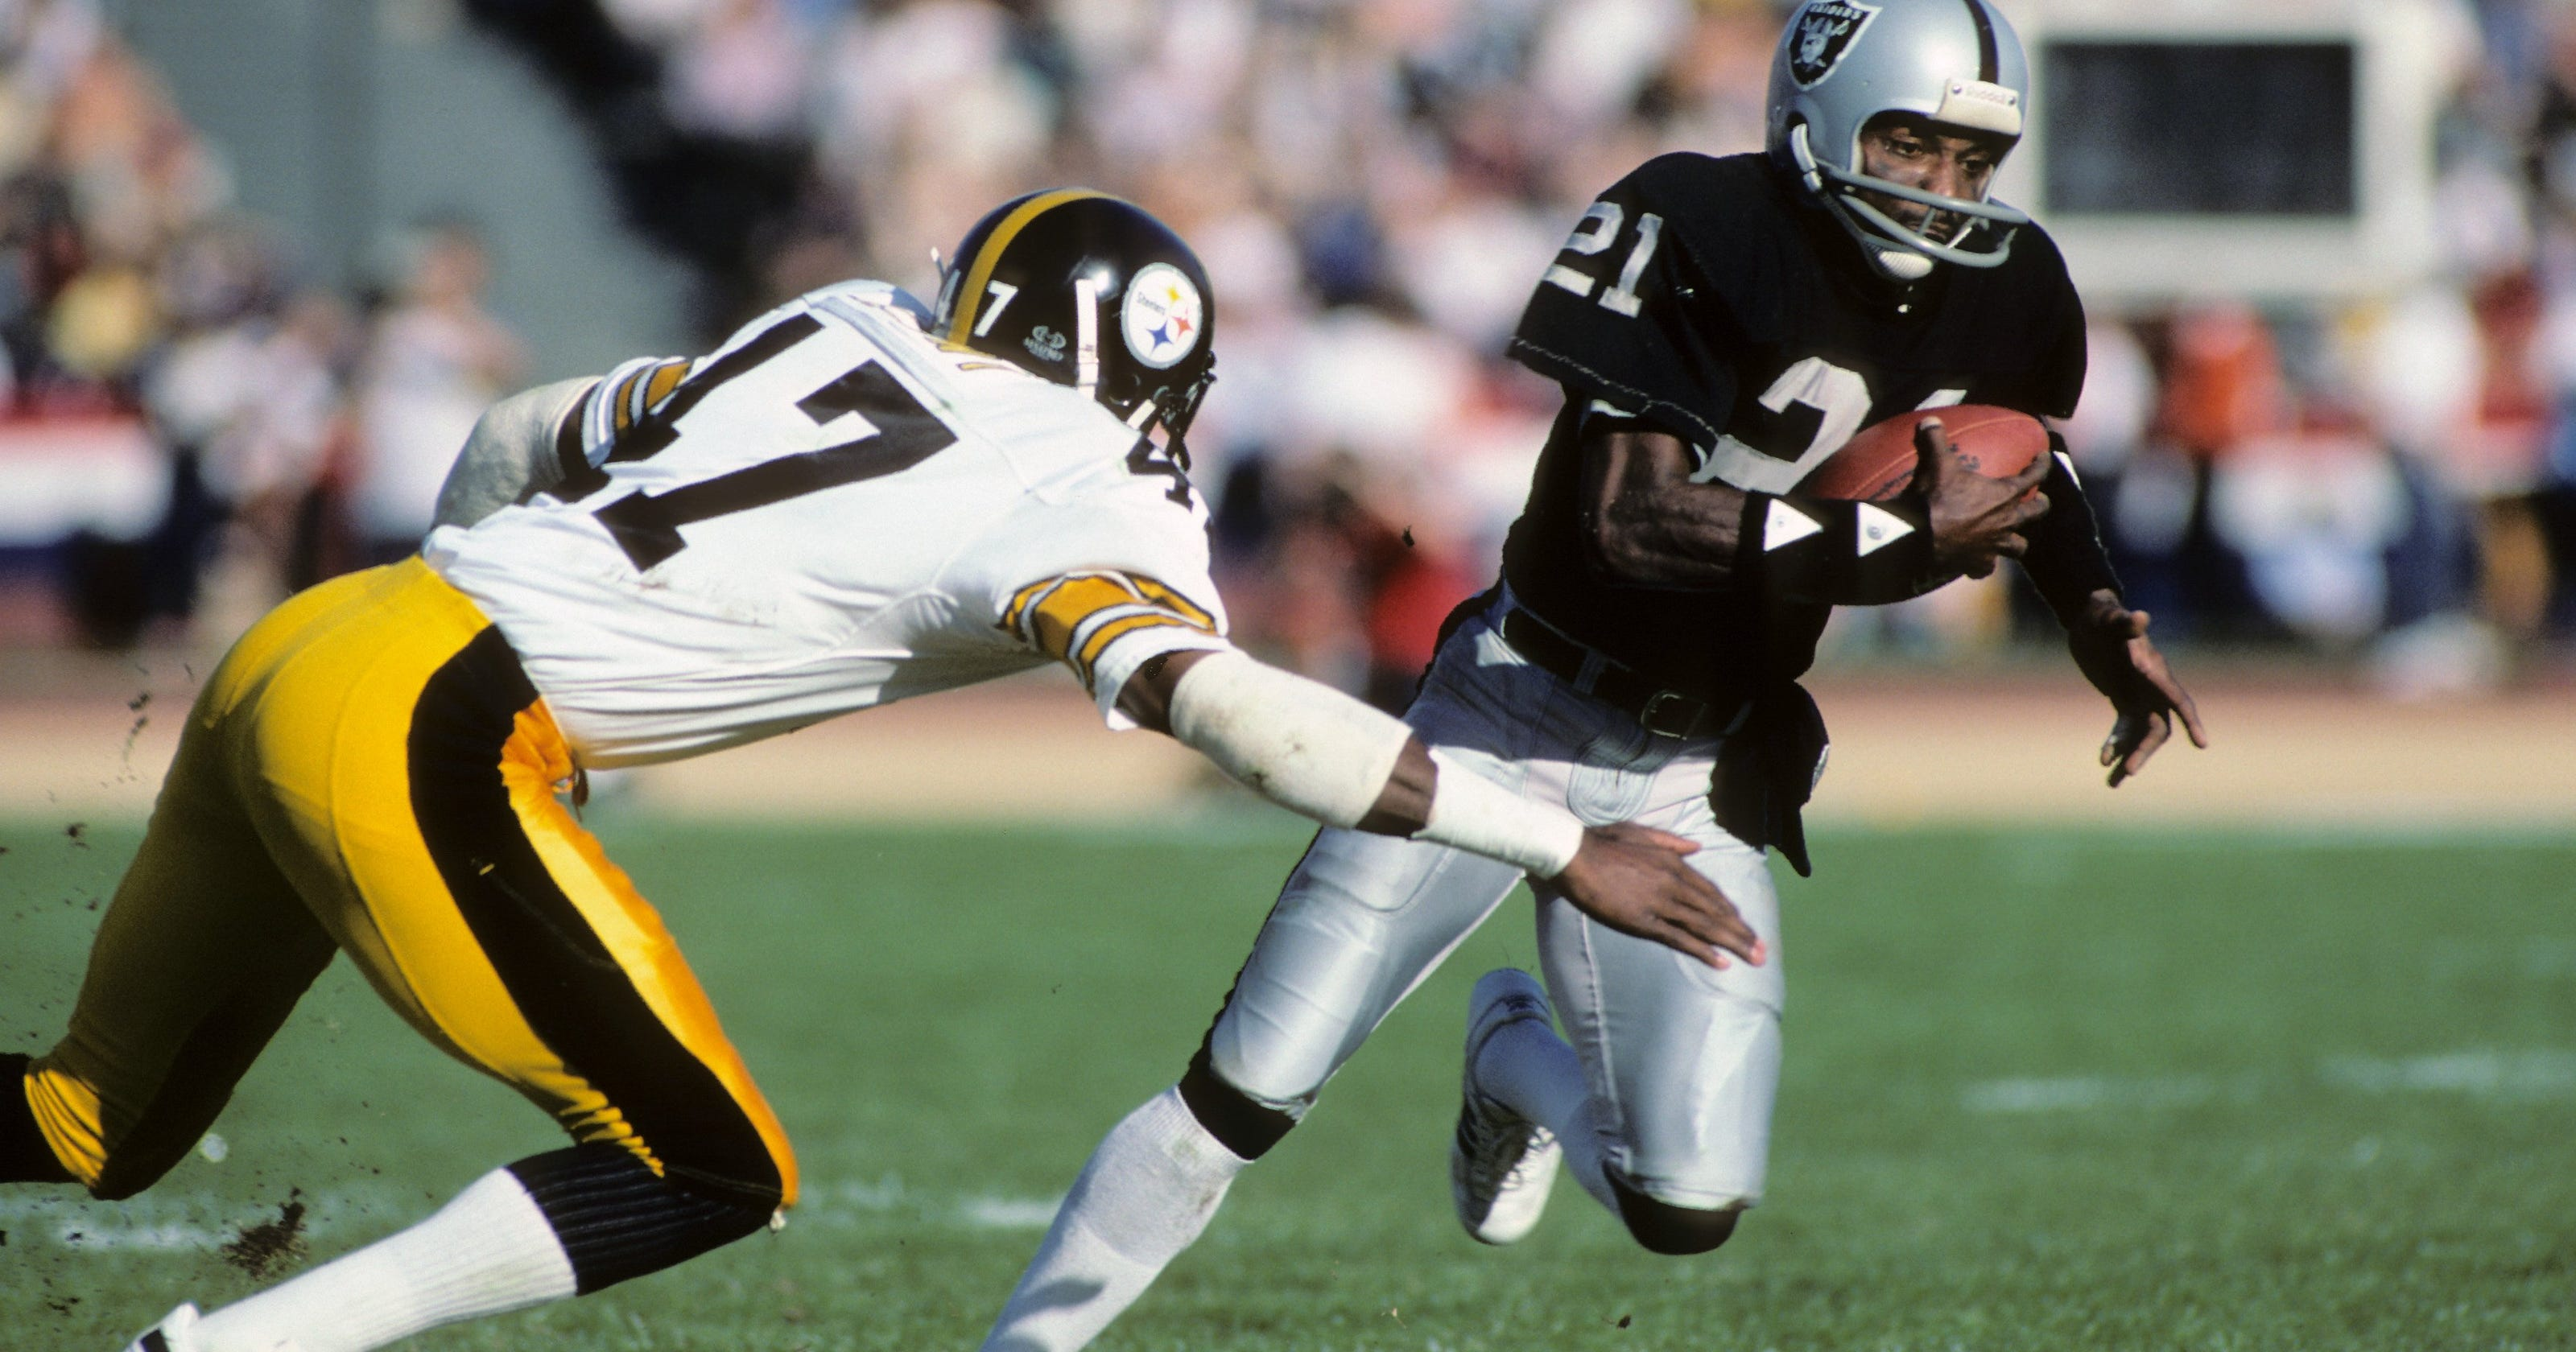 NFL: Cliff Branch, former Raiders great, dies at 71